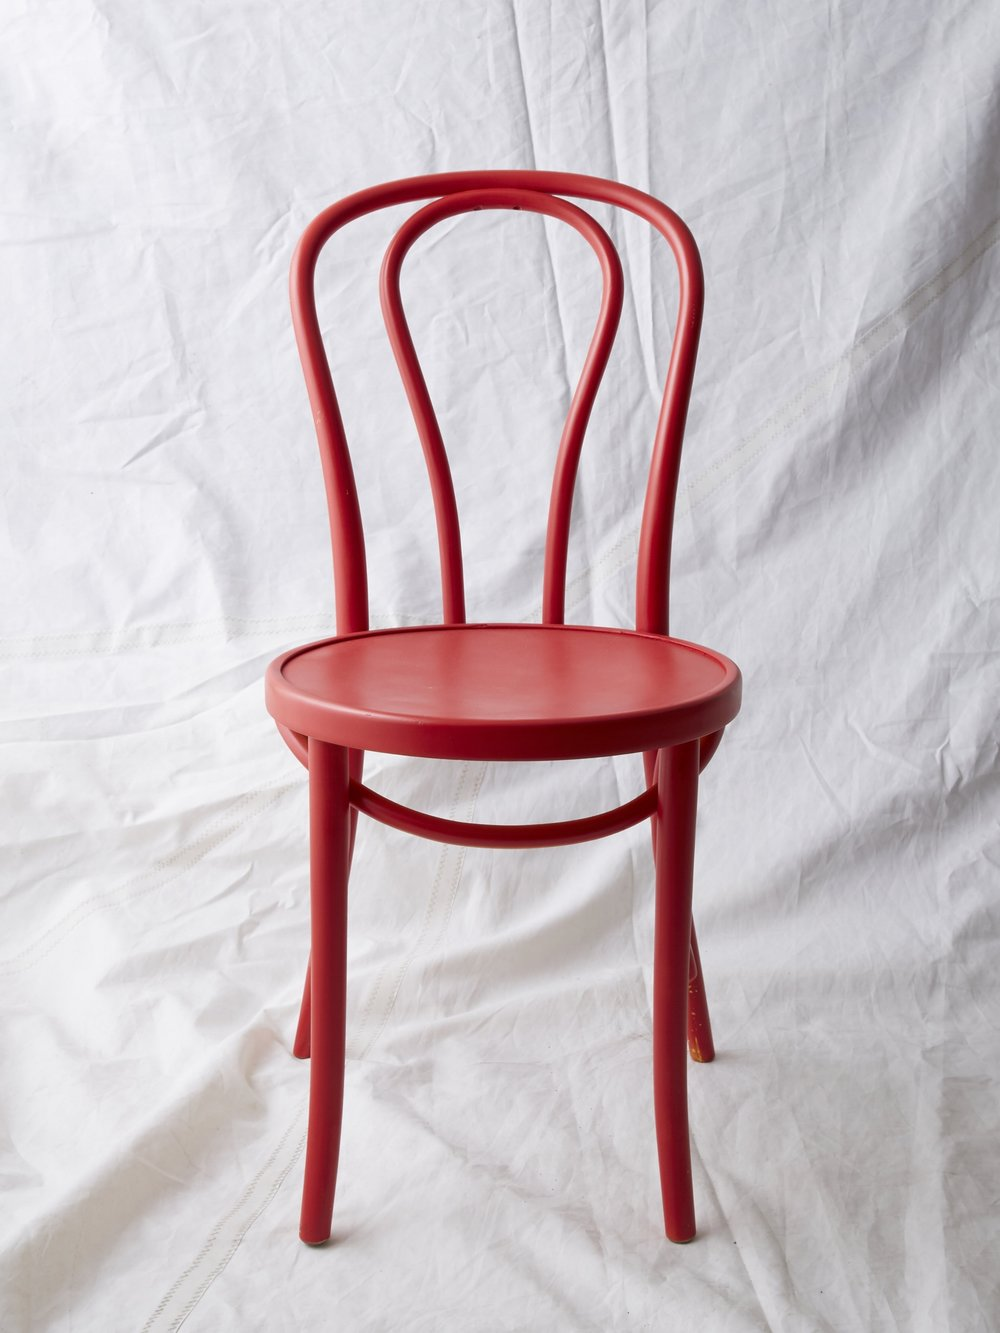 "CH024  Red painted Thonet chair 35"" H x 16"" W x 20"" D  $75/week"